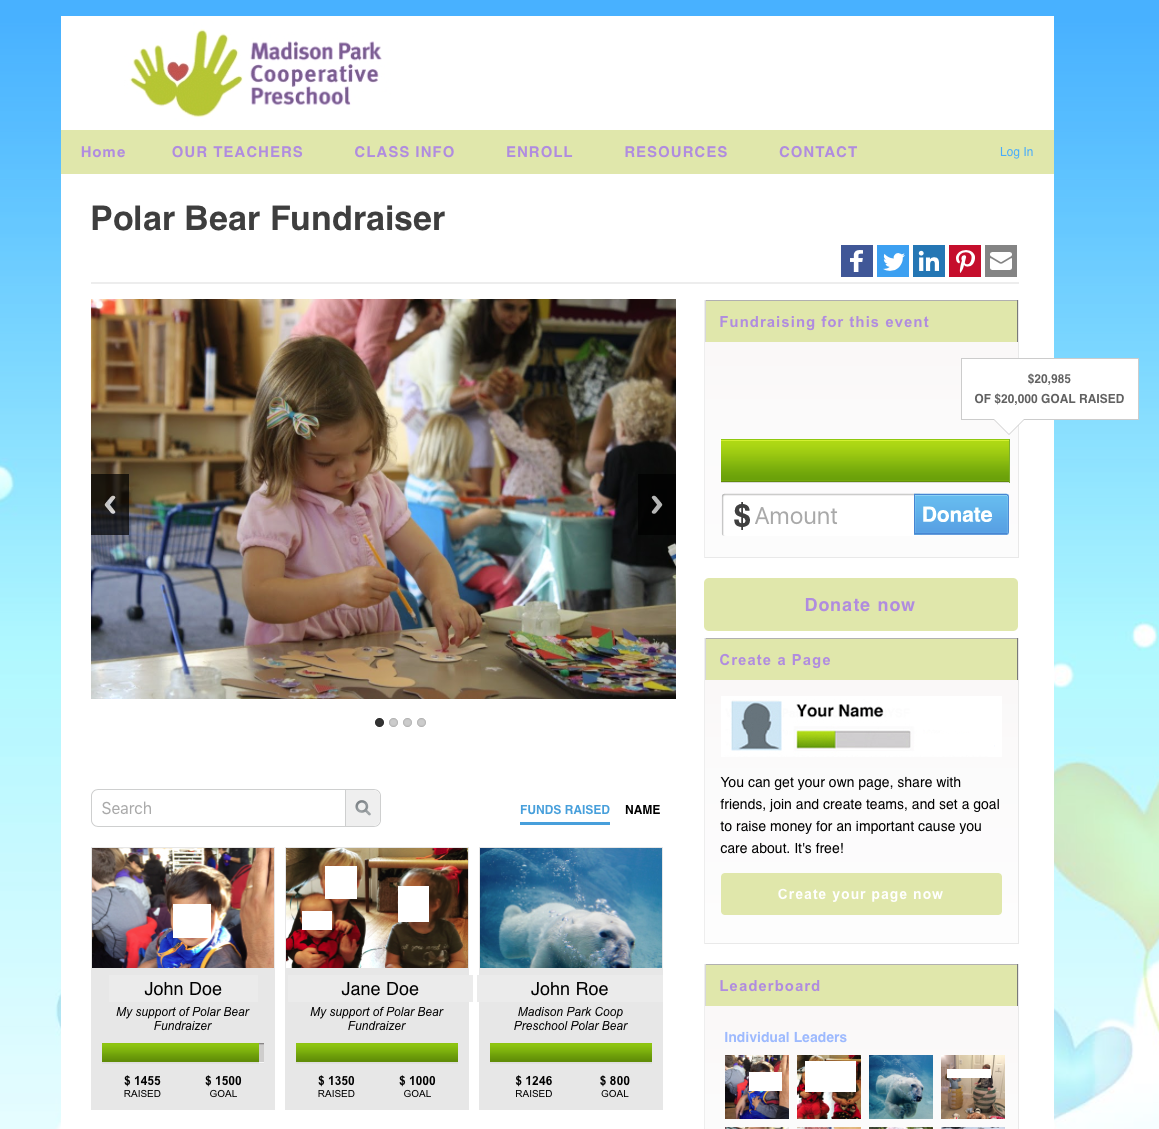 Madison Park PB Fundraiser home page anonymous